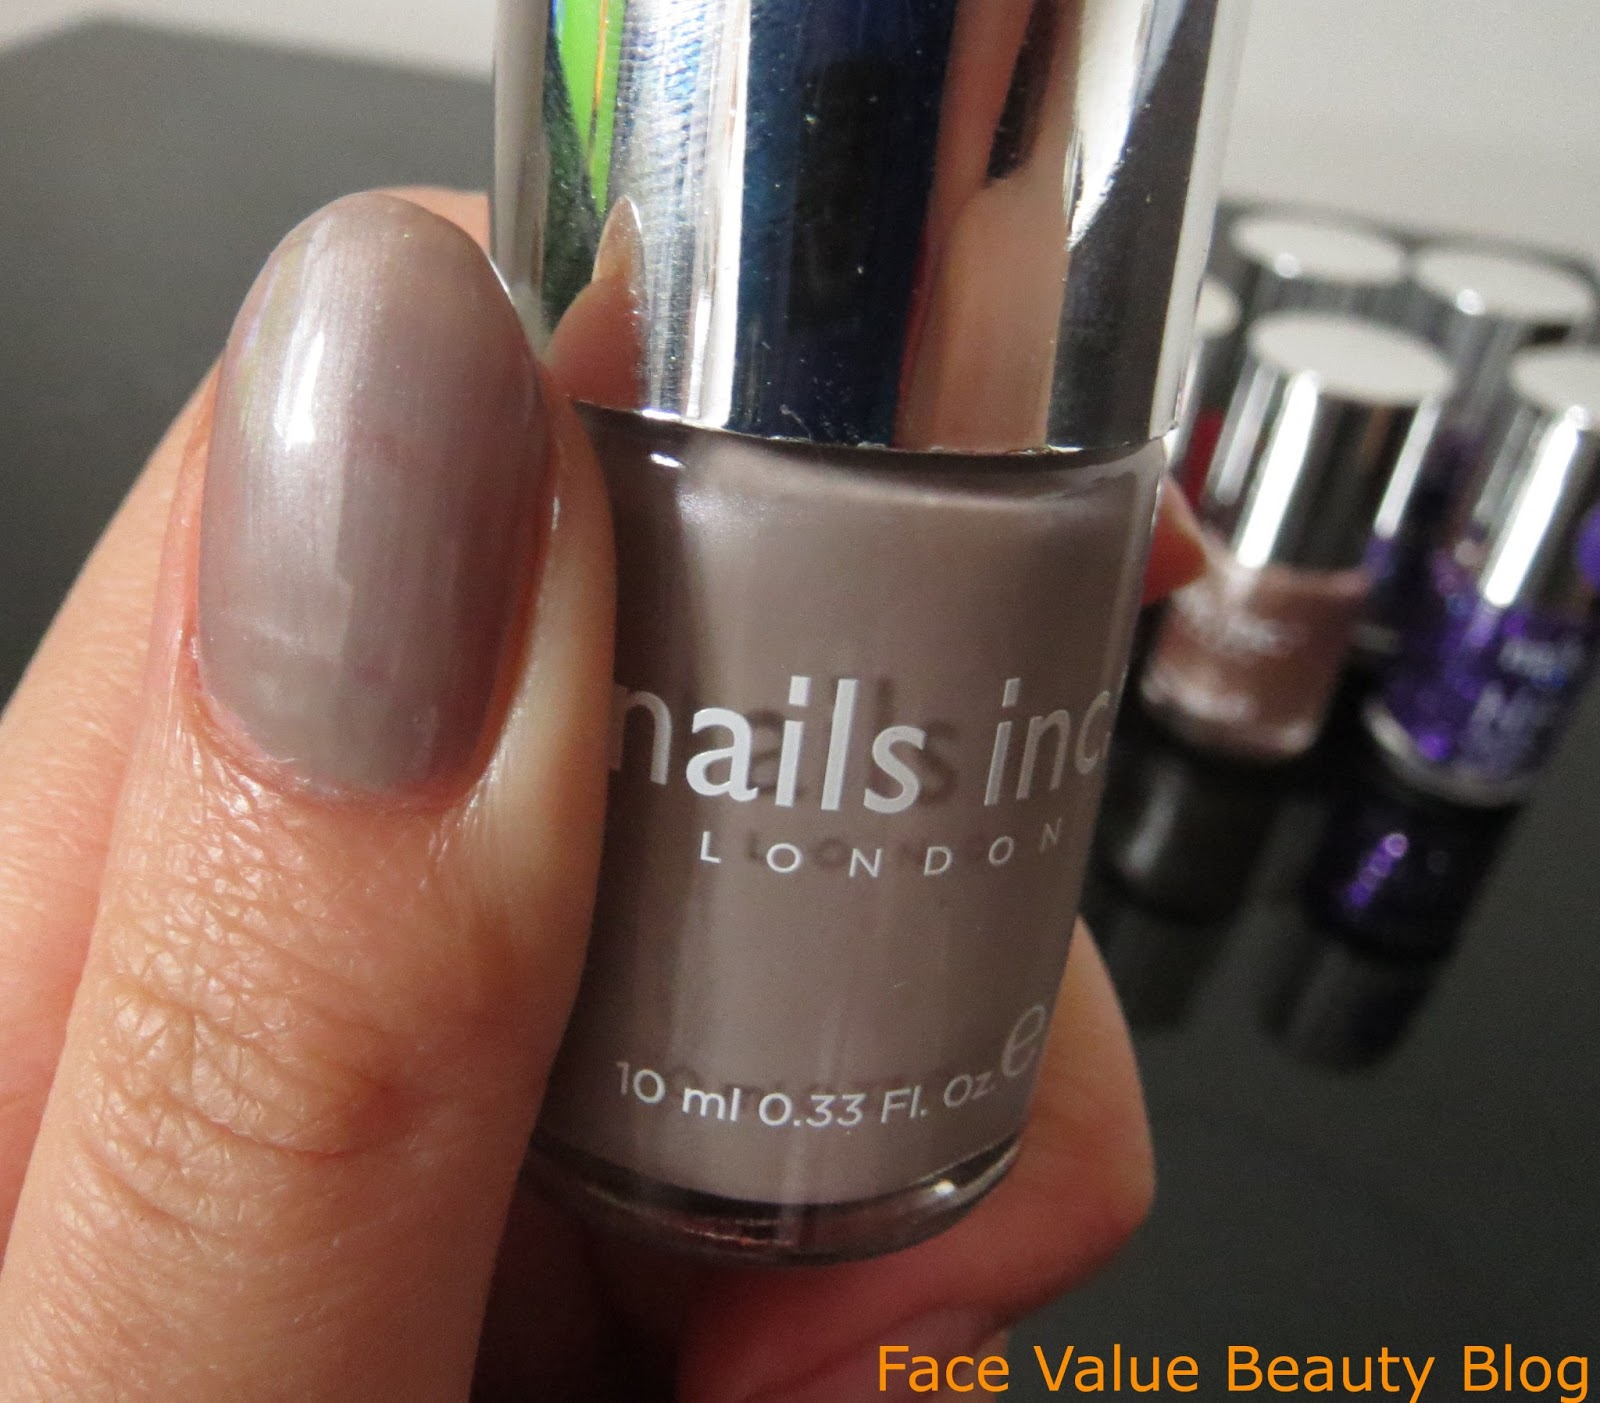 Nails Inc Lucky Dip is back! 7 Mystery Nail Polishes - what did I ...